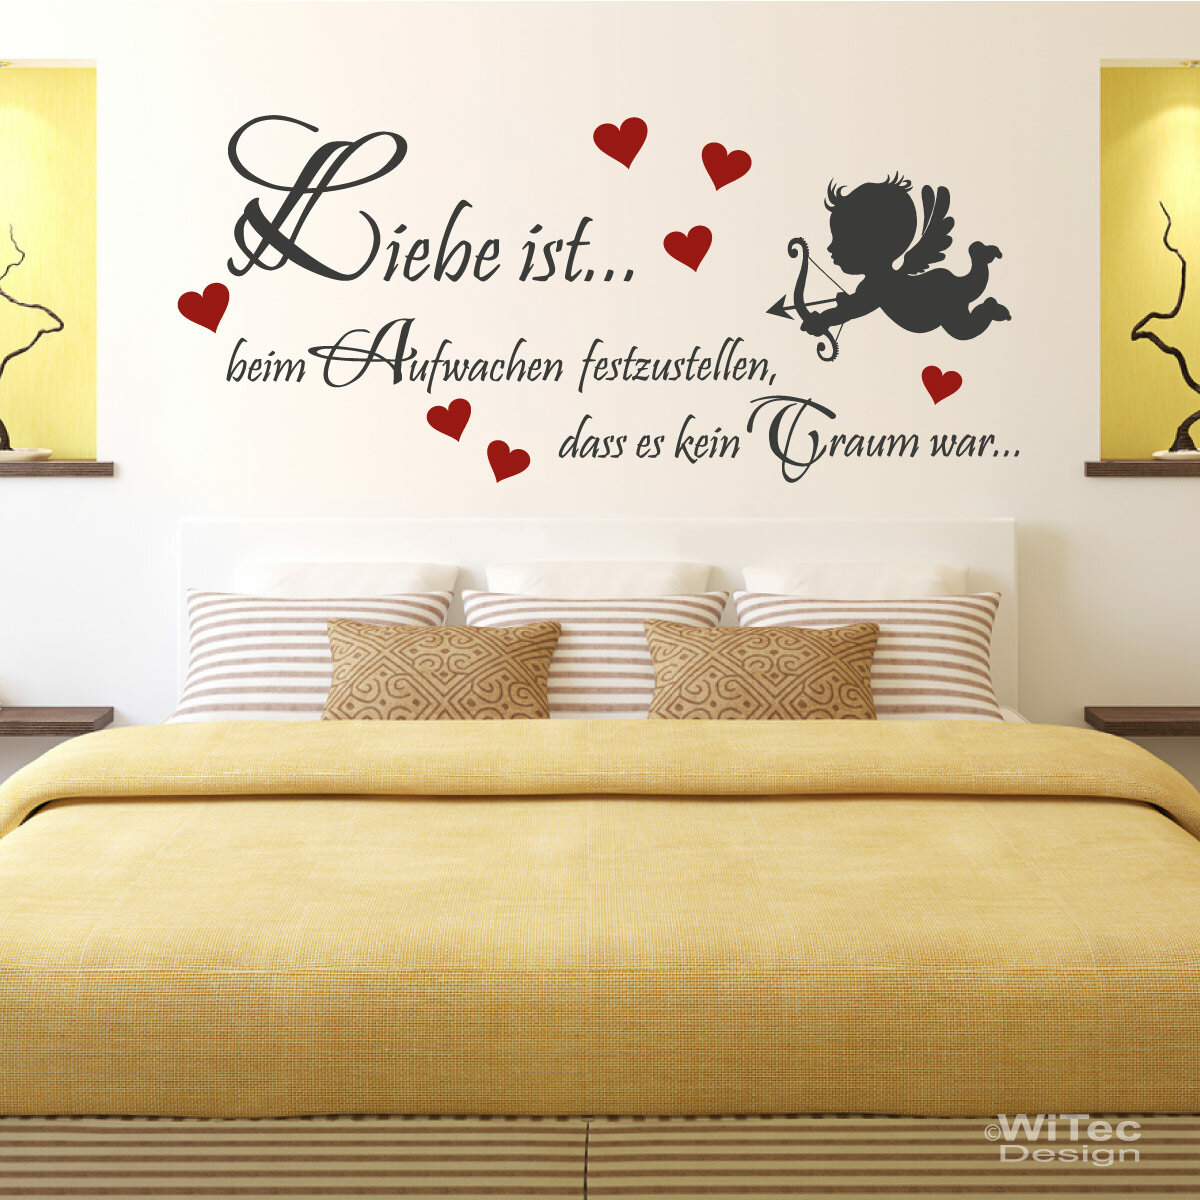 wandaufkleber liebe ist wandtattoo engel schlafzimmer. Black Bedroom Furniture Sets. Home Design Ideas